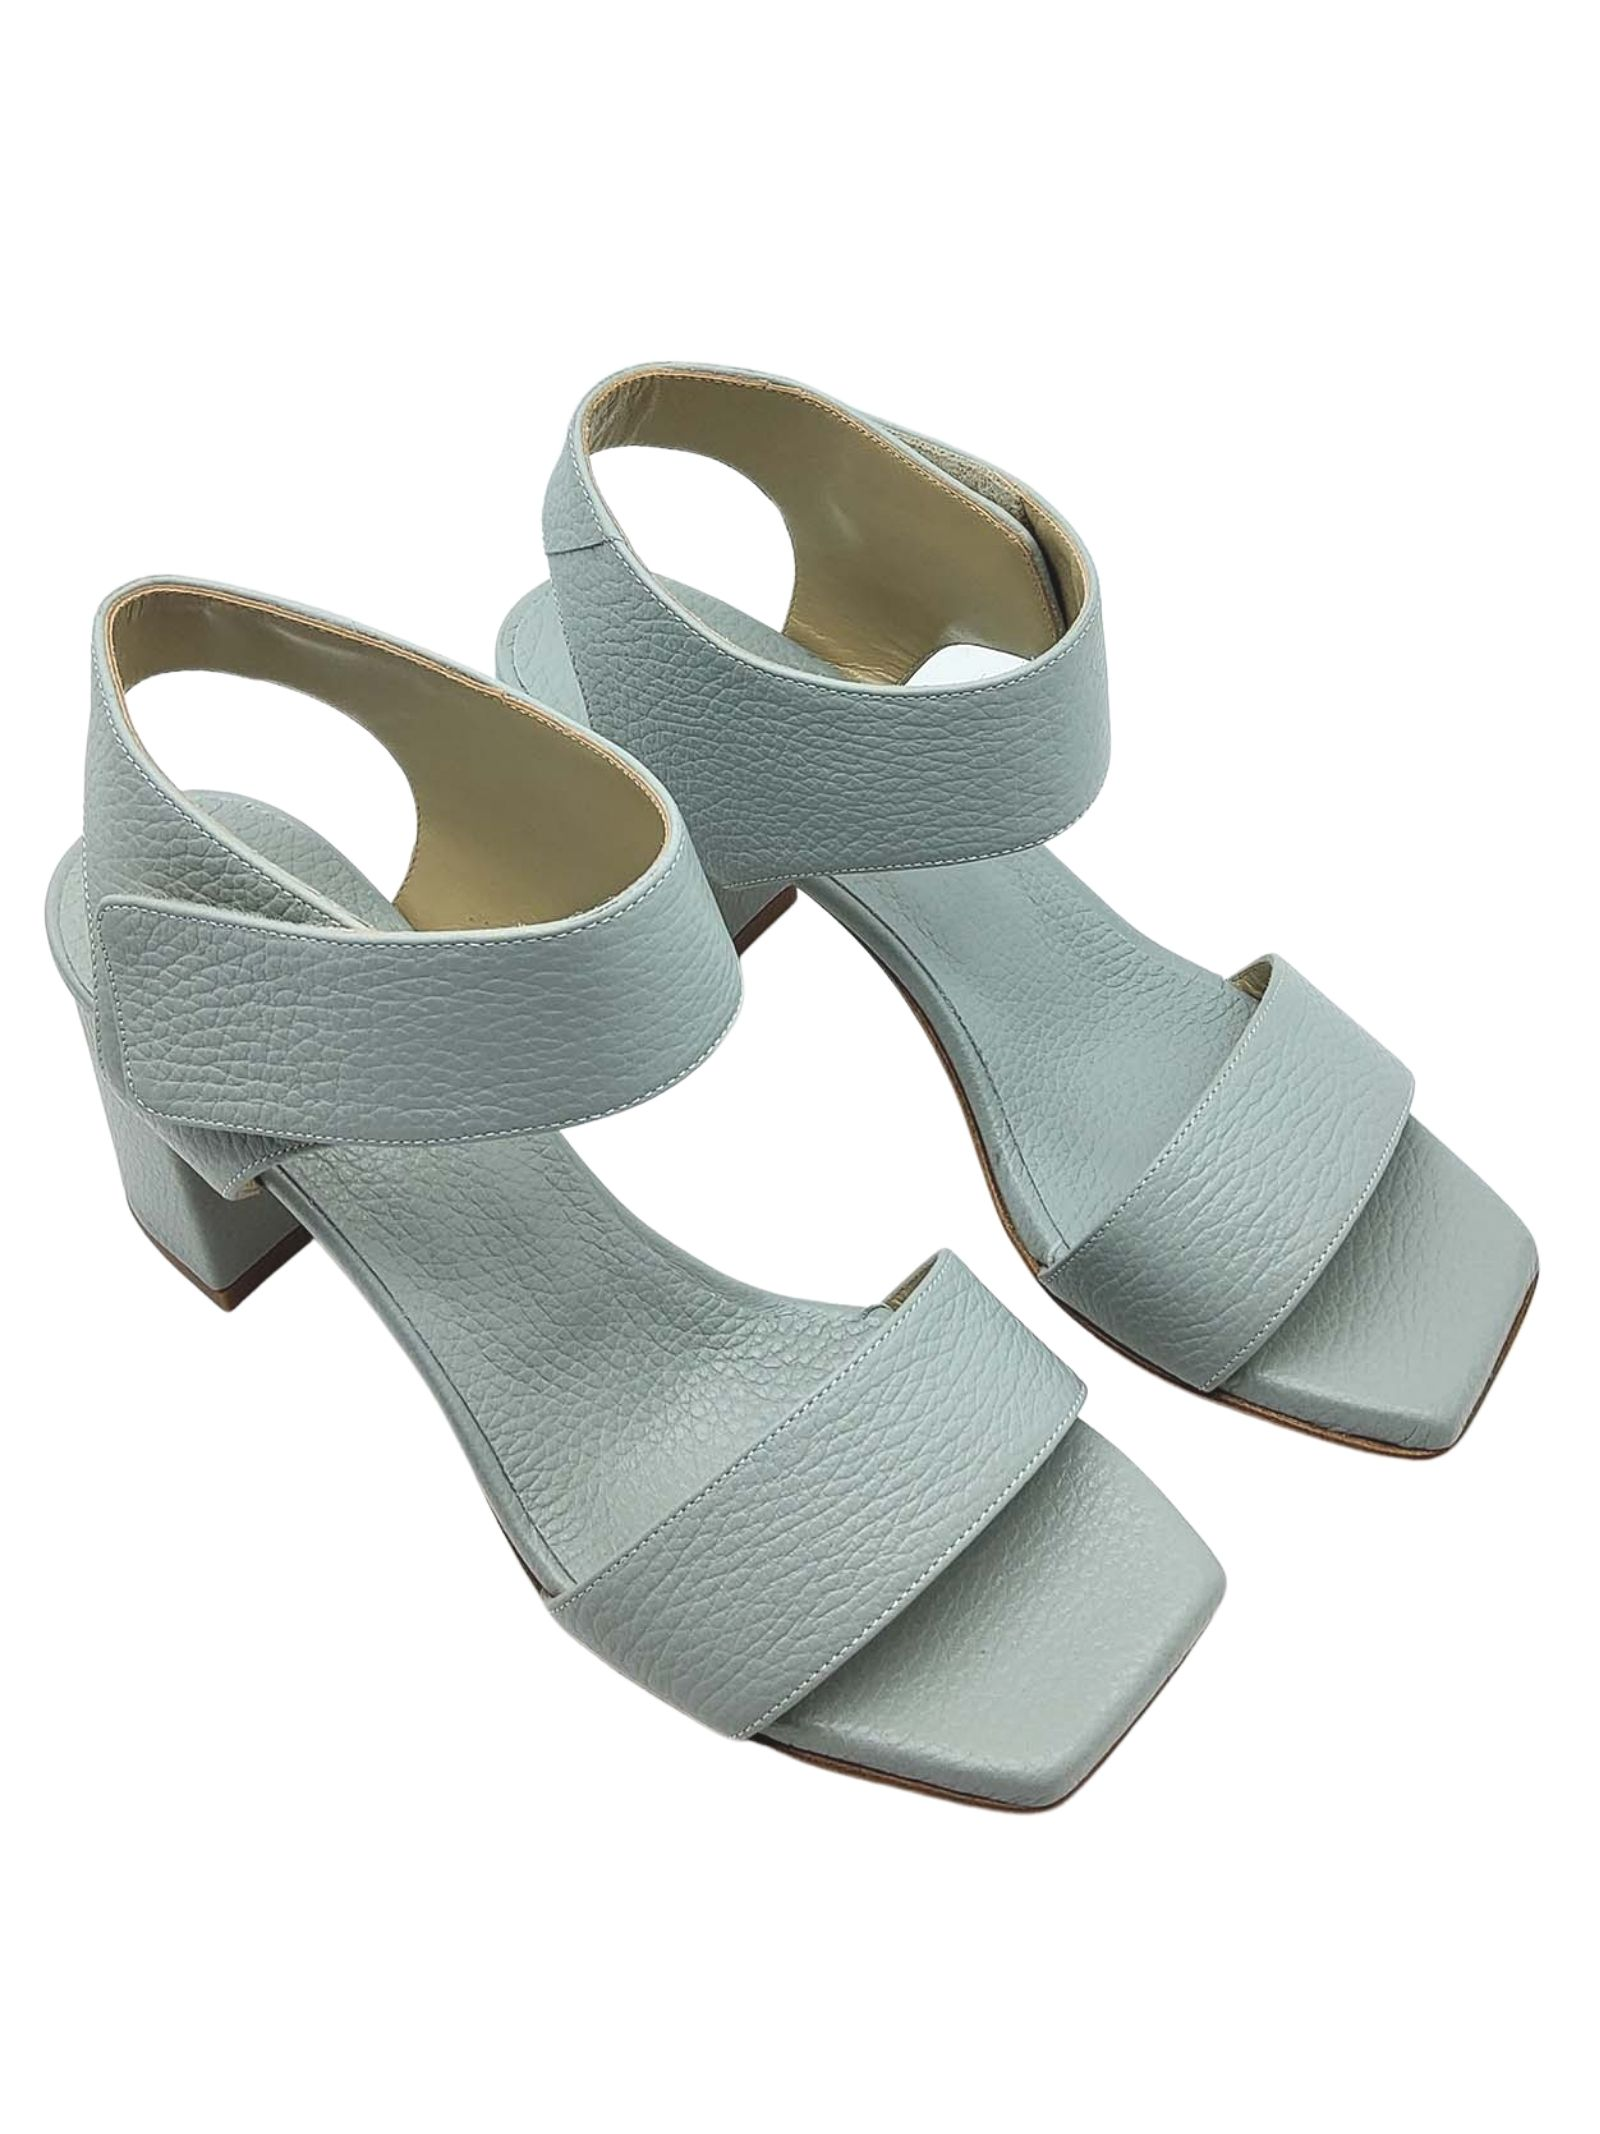 Women's Shoes Light Blue Leather Sandals with High Heel Strap and Square Toe Tattoo | Sandals | 109400